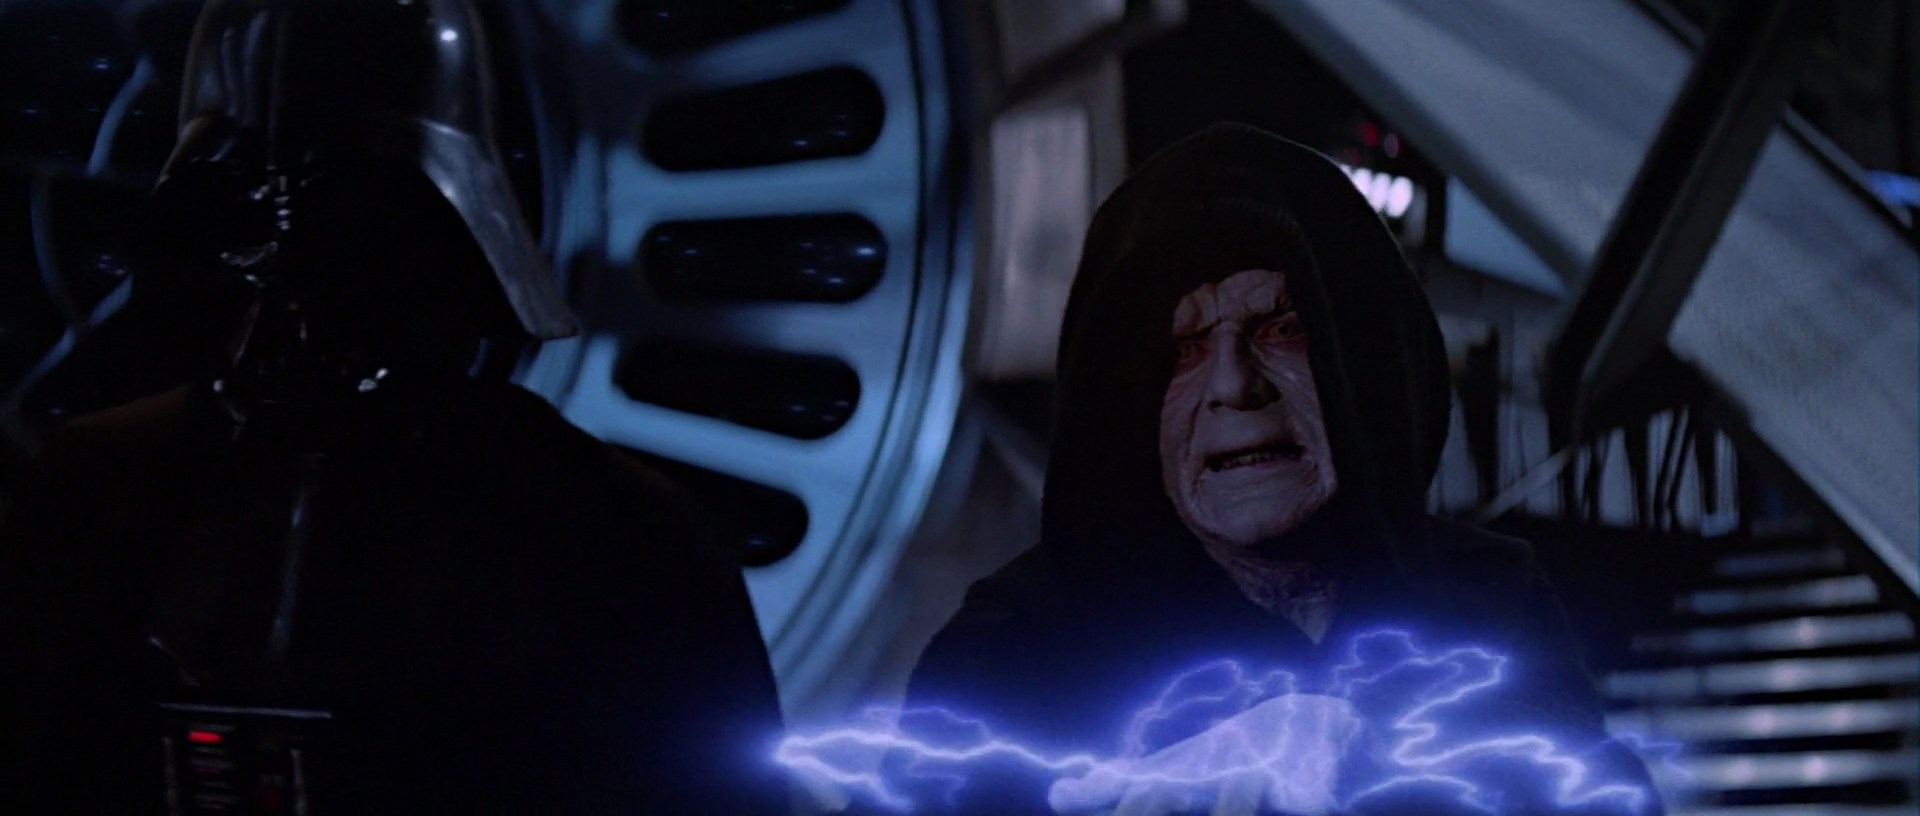 Emperor Palpatine is back in Star Wars: The Rise of Skywalker